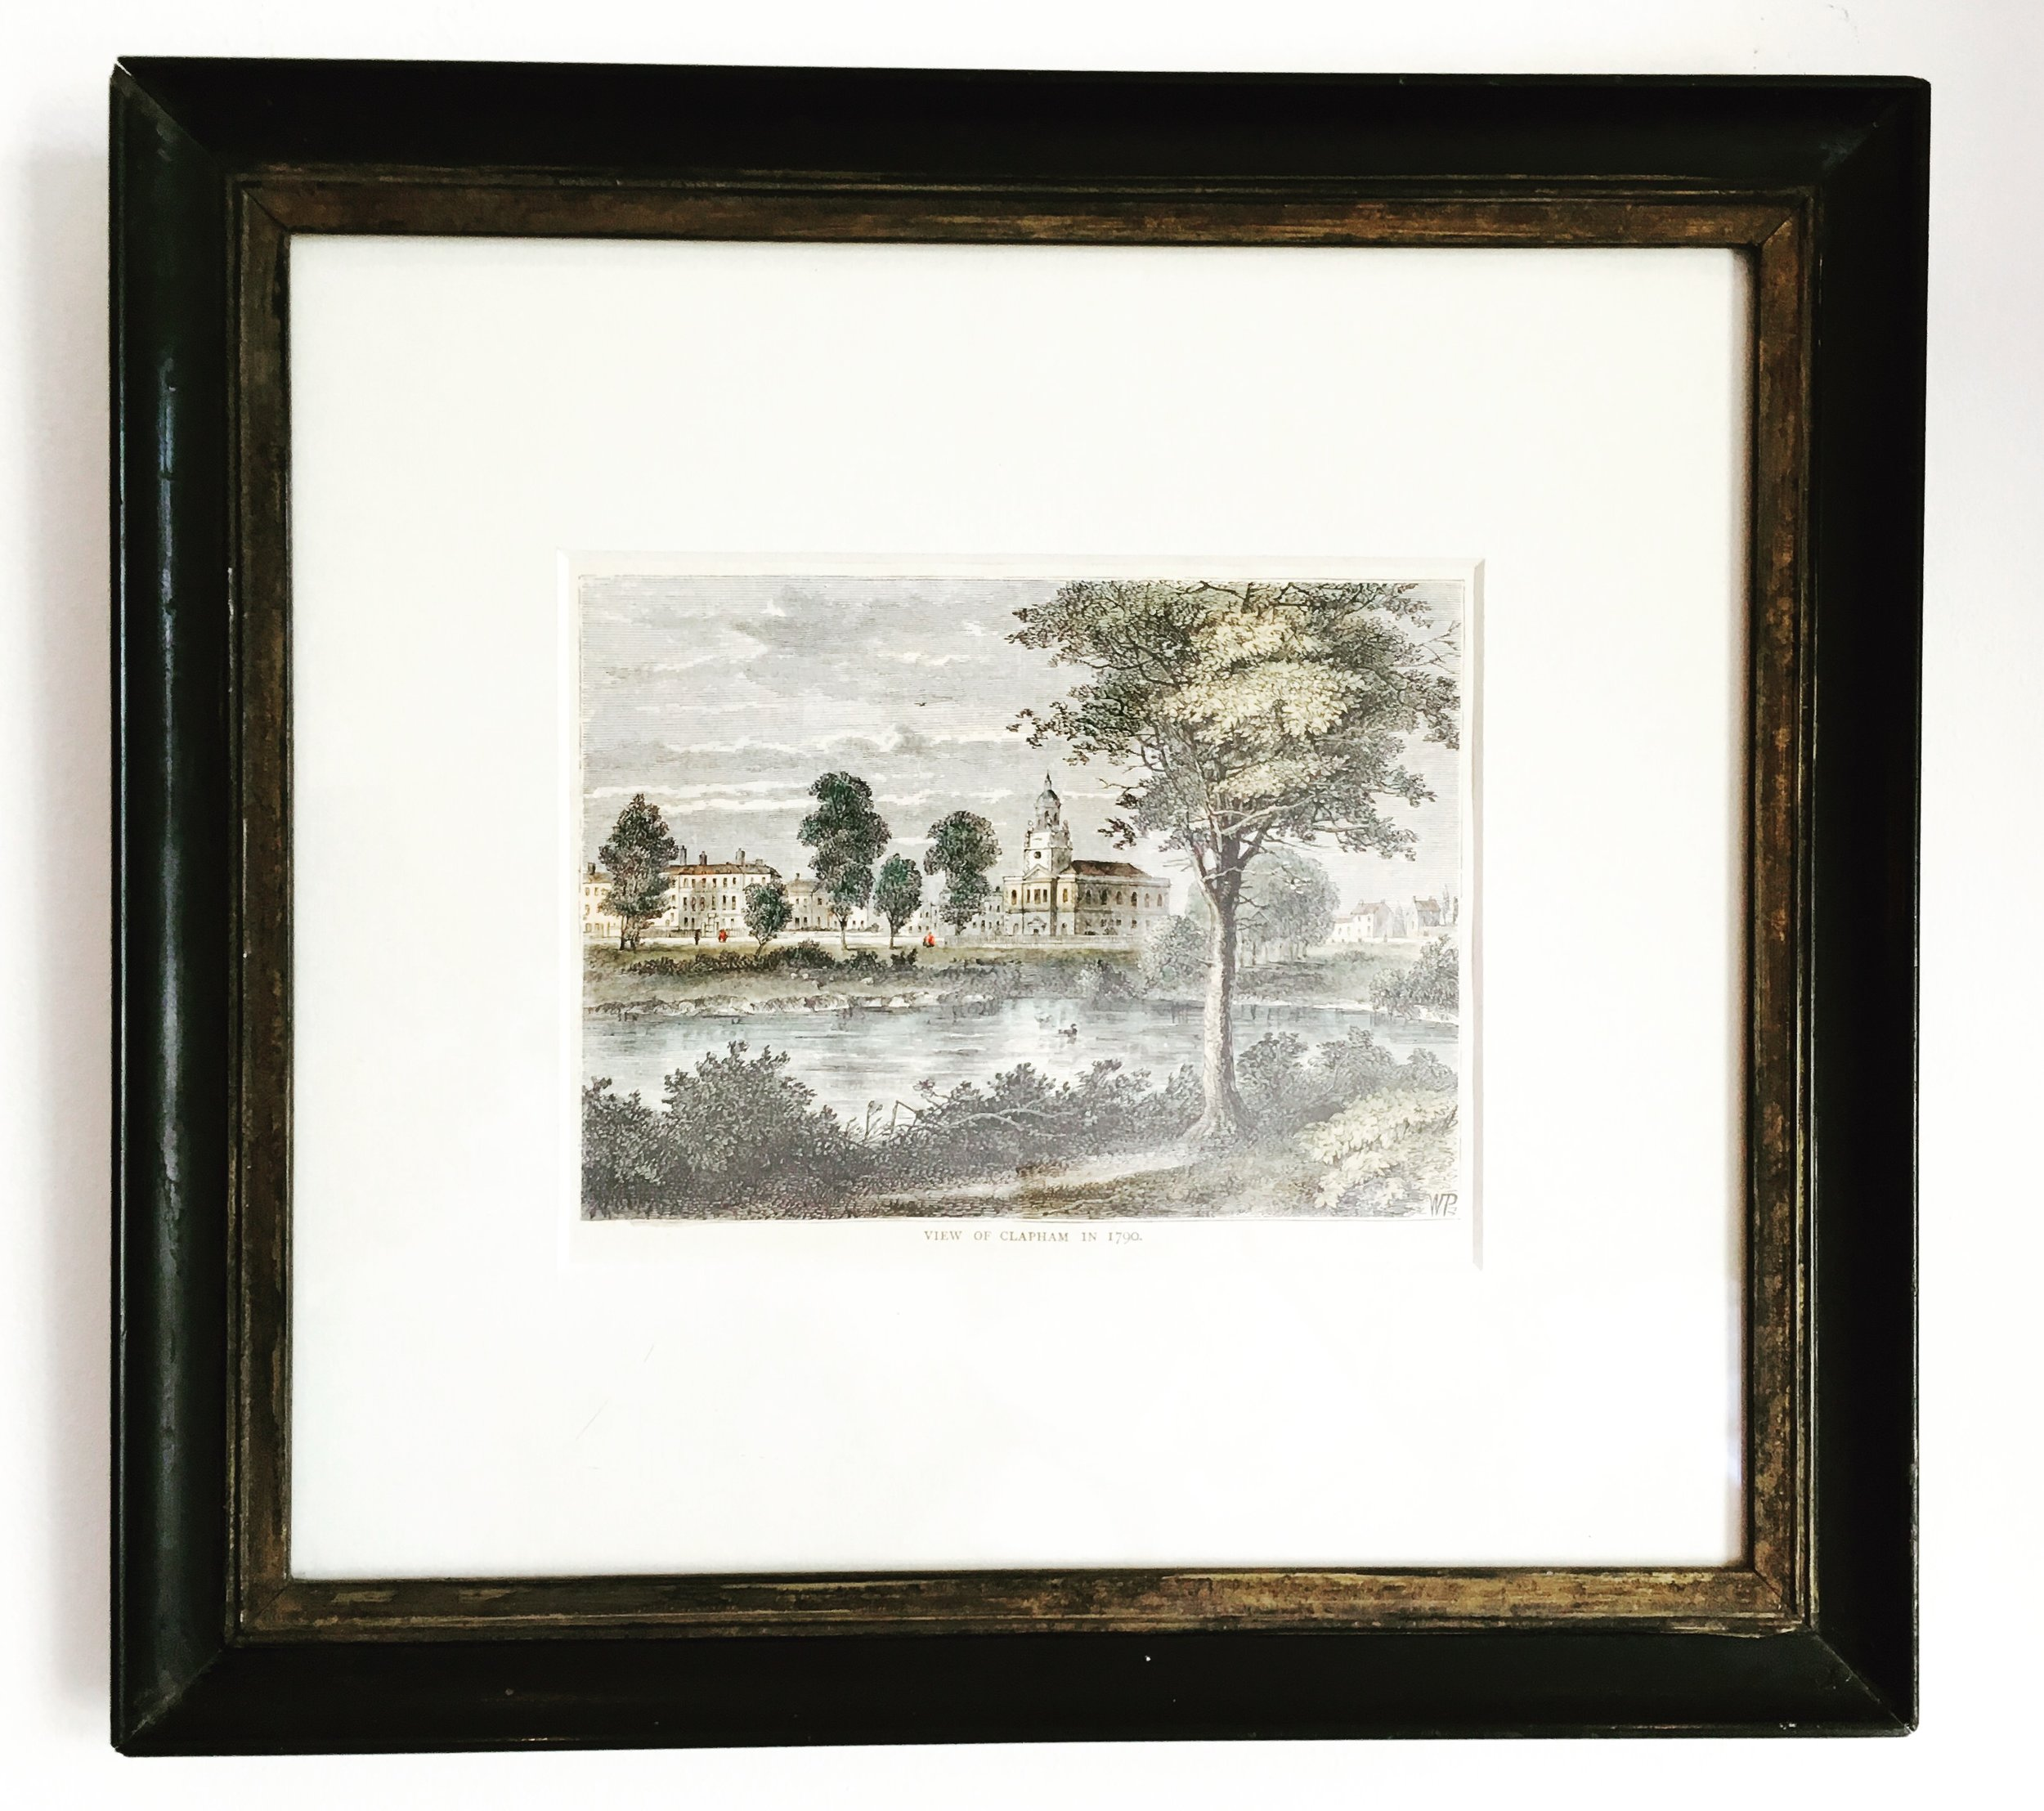 Small vintage frame around a lovely water colour landscape painting.